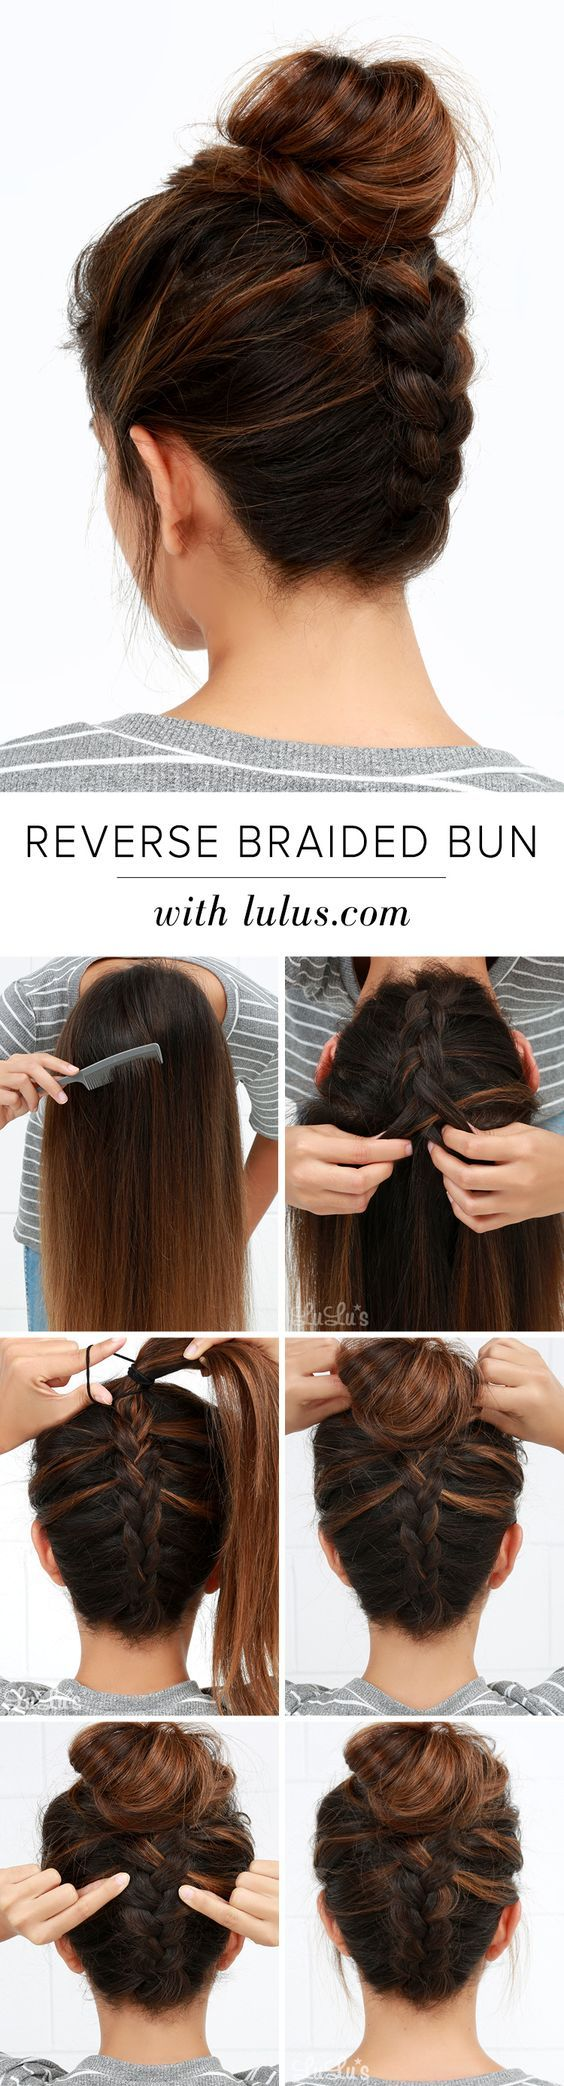 Marvelous 1000 Ideas About Short Braided Hairstyles On Pinterest Short Hairstyle Inspiration Daily Dogsangcom